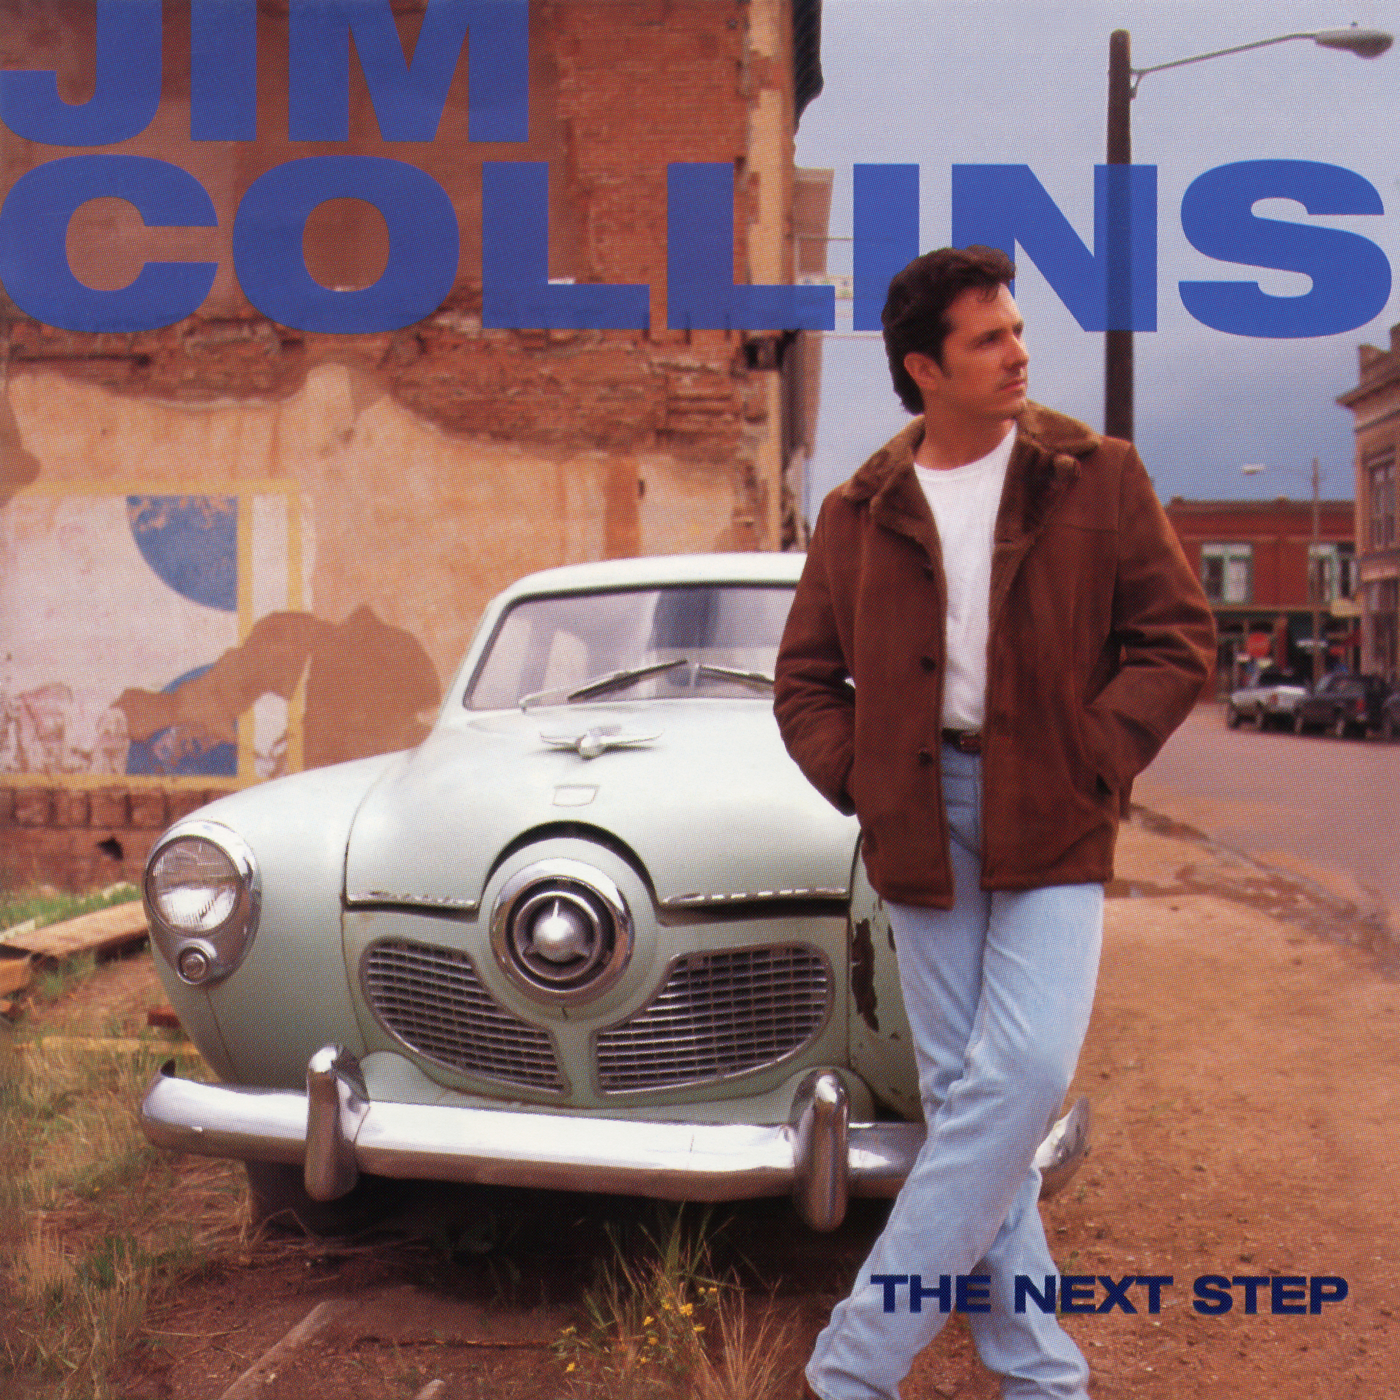 The Next Step - Jim Collins